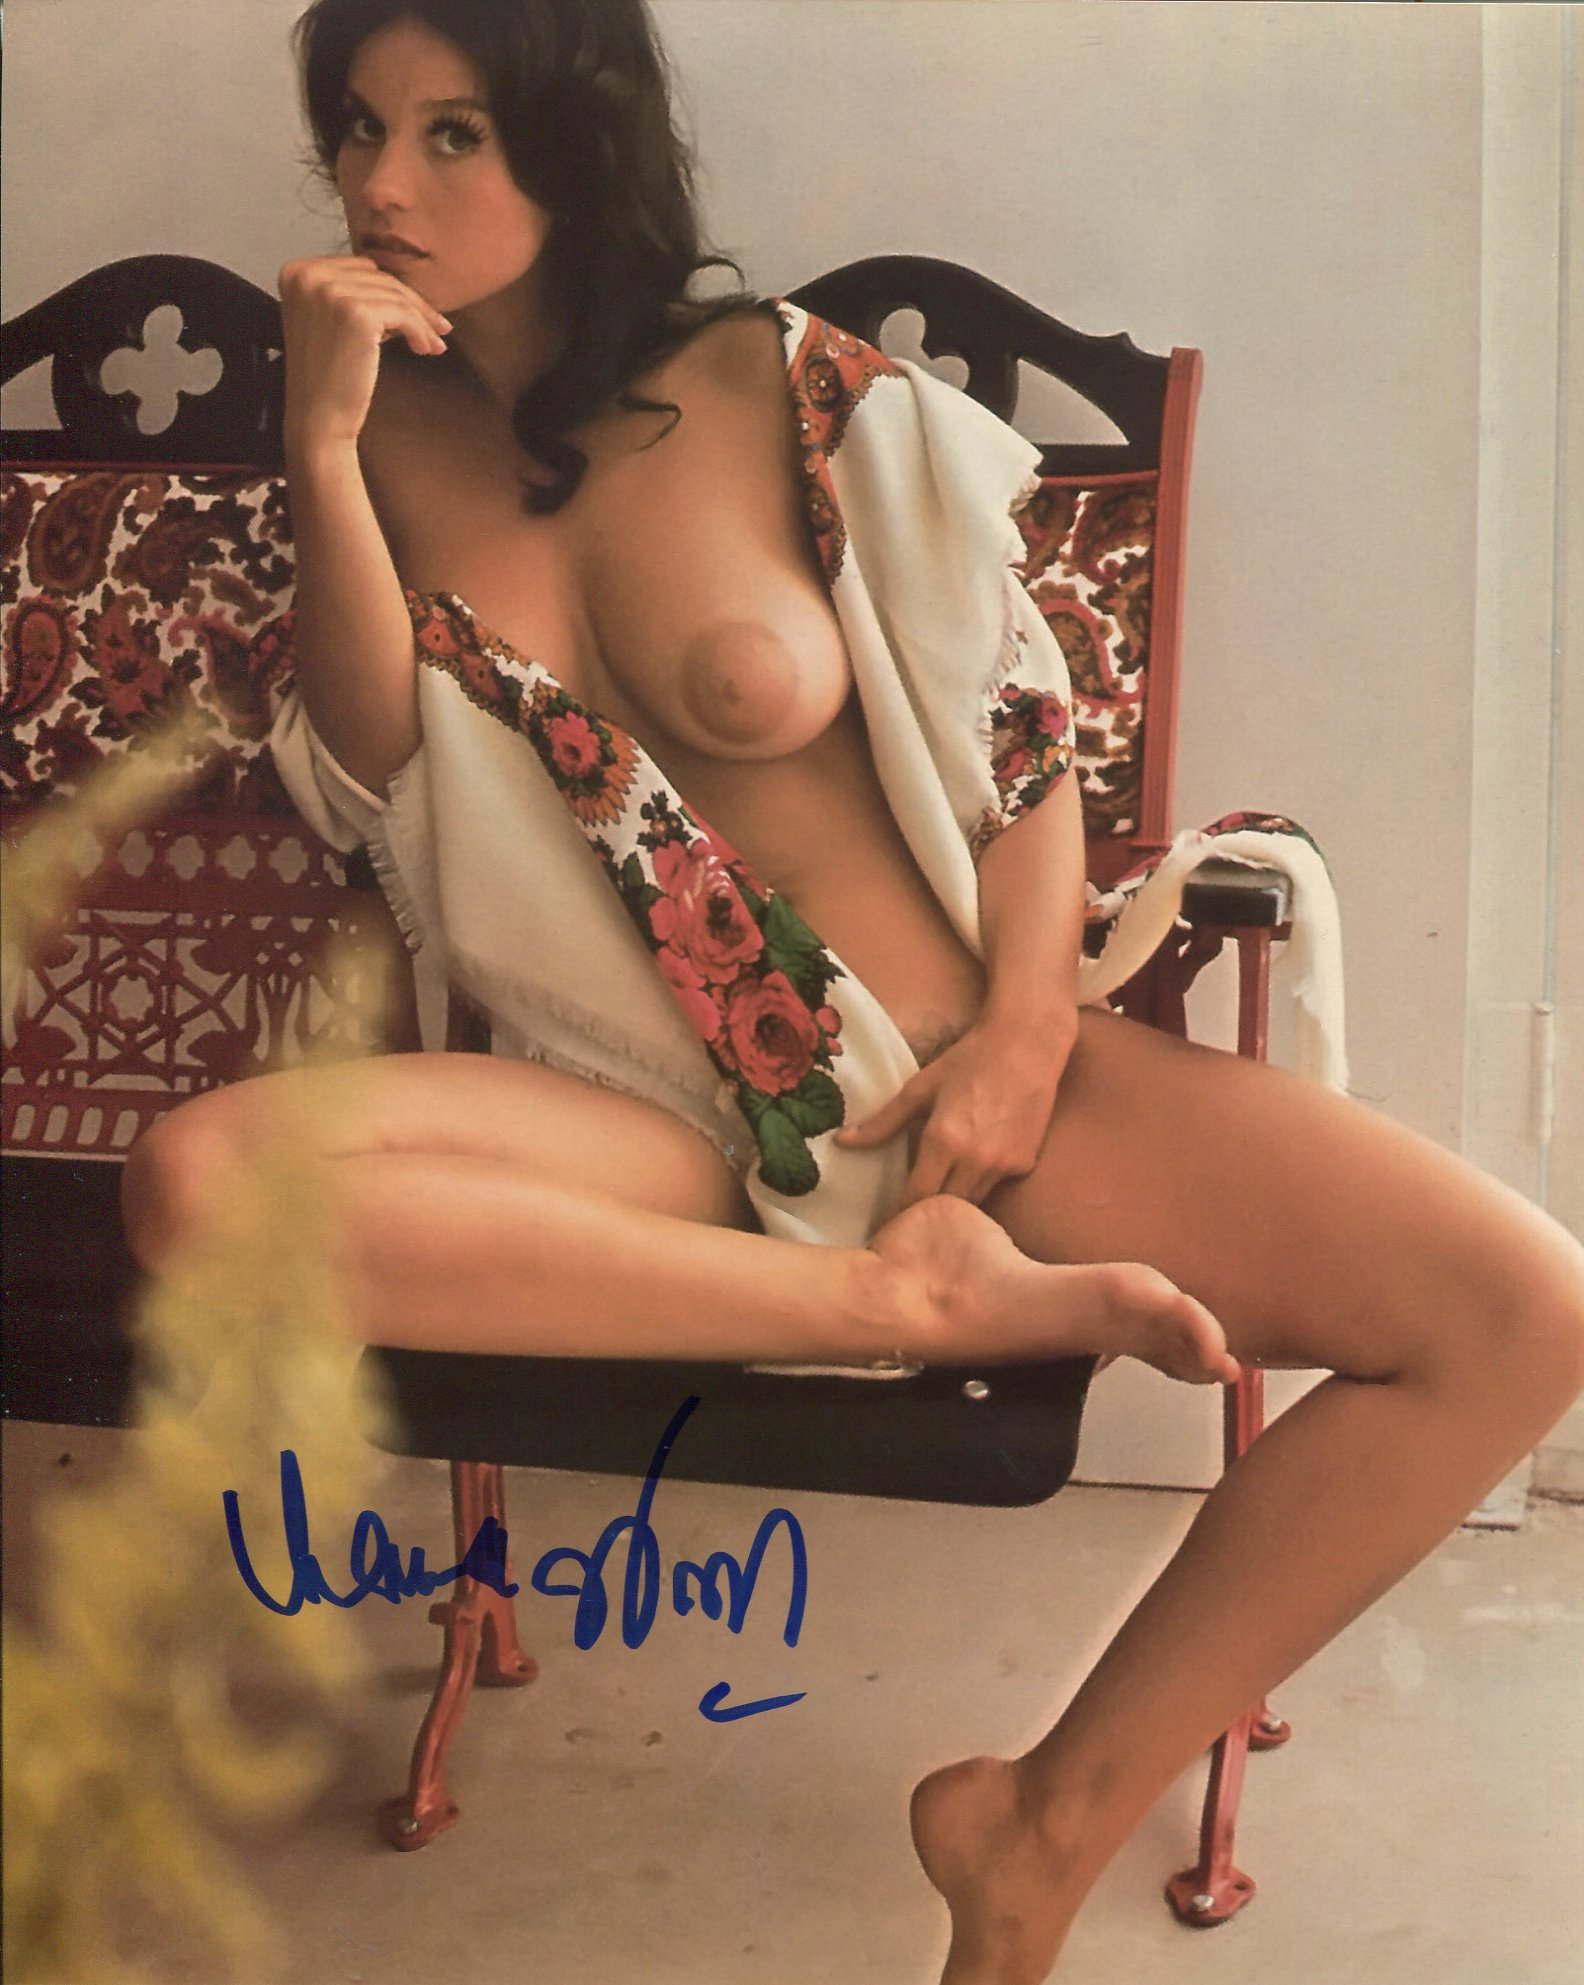 007 Bond girl Lana Wood signed photo, desirable image of her reclining topless in a chair. Good